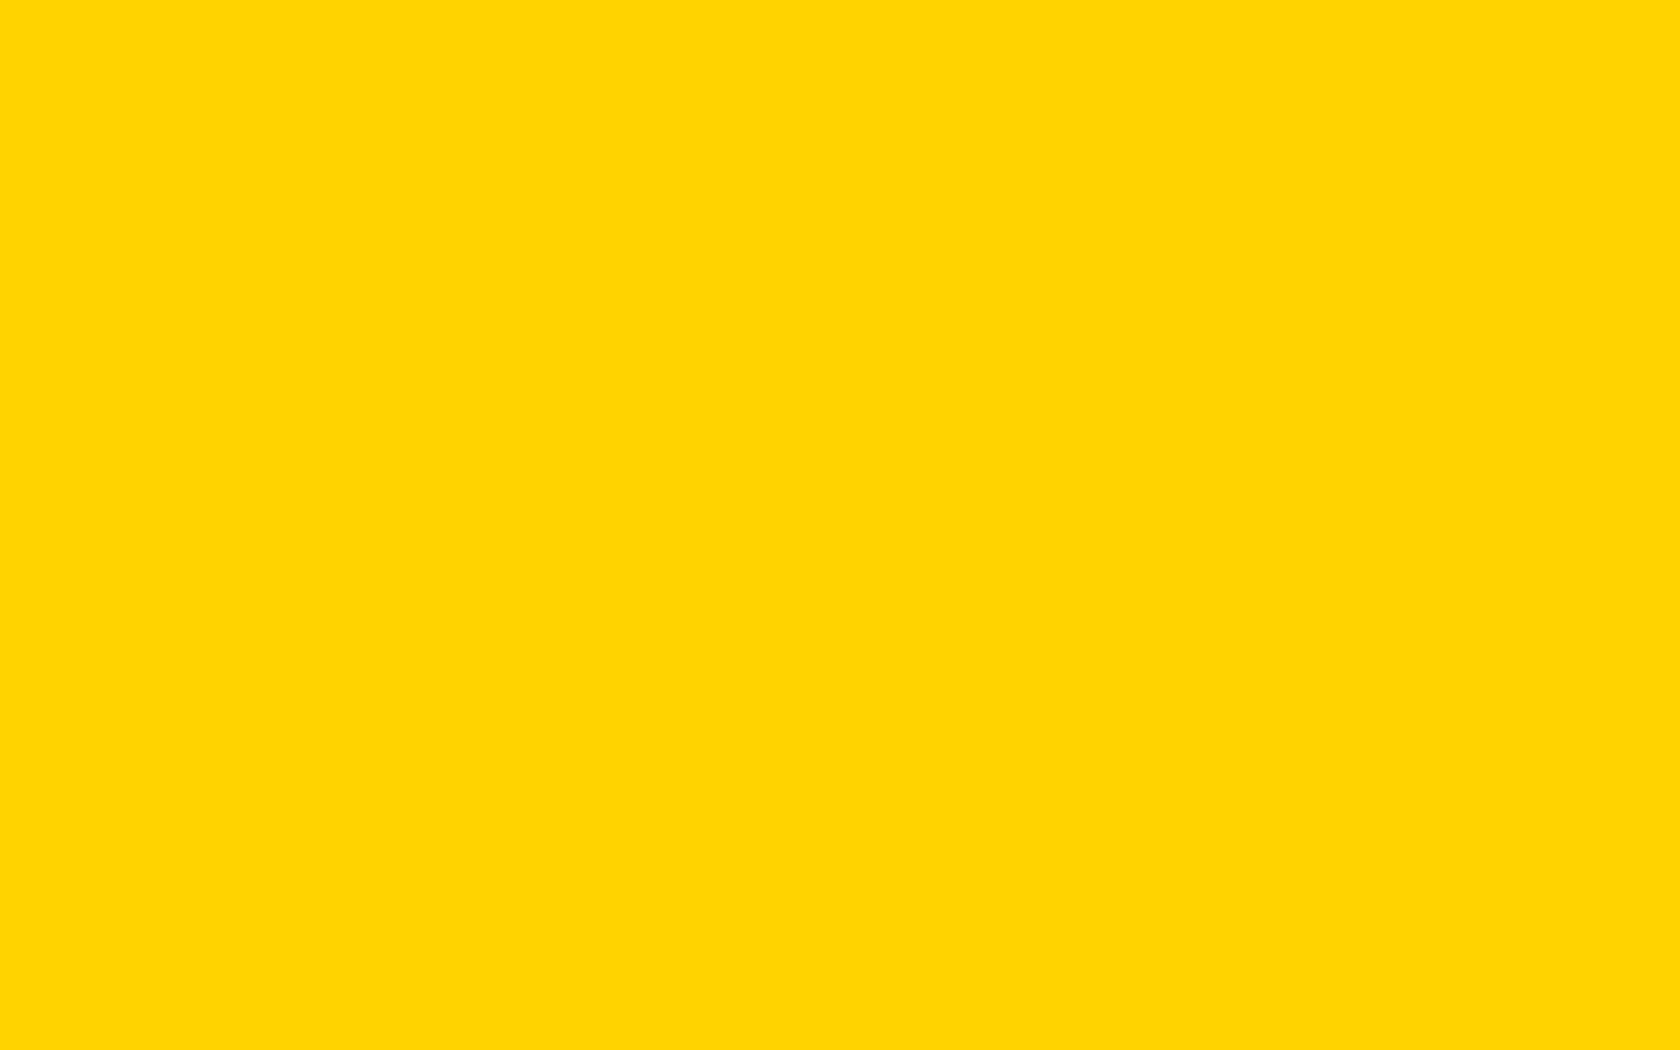 1680x1050 Yellow NCS Solid Color Background